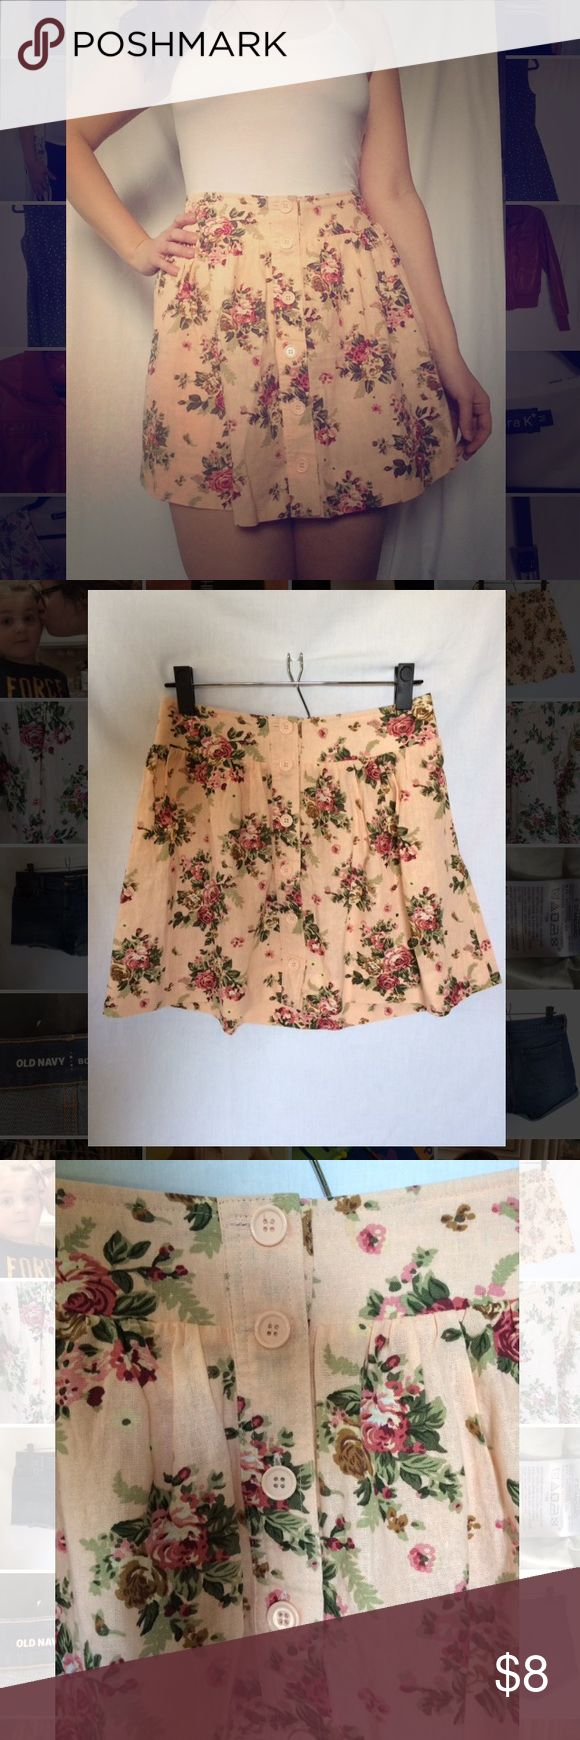 Floral Button Up Skirt Never worn. Perfect condition and super cute!  Short light pink skirt with floral design. Button detail on front. Elastic on the back of the waist band to provide stretch. Linen material.   Cute for Valentine's Day, Easter, church, dates, dinners, holiday, etc. Forever 21 Skirts Mini